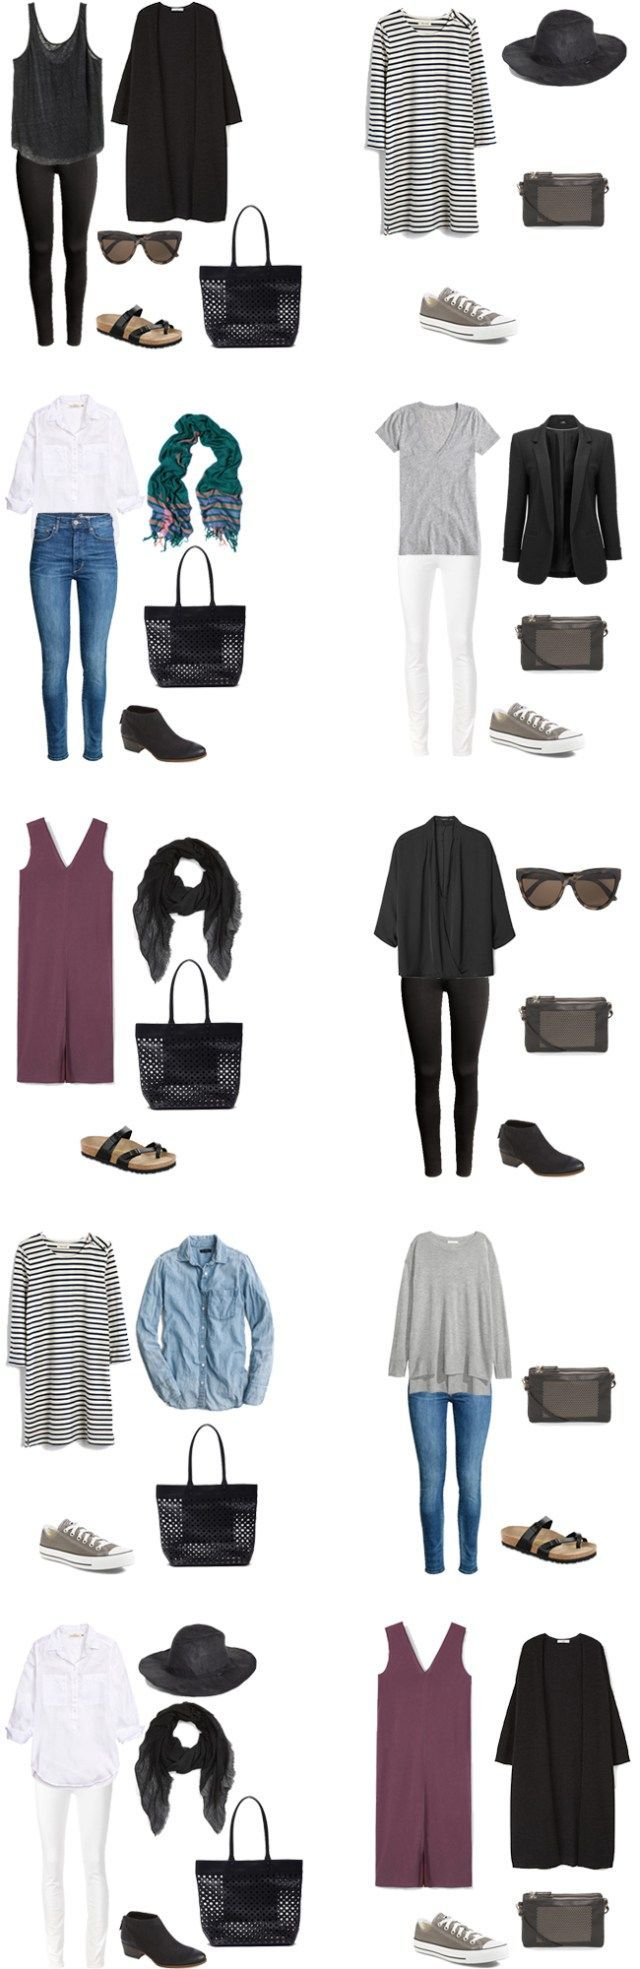 outfits to wear to college 5 best outfits